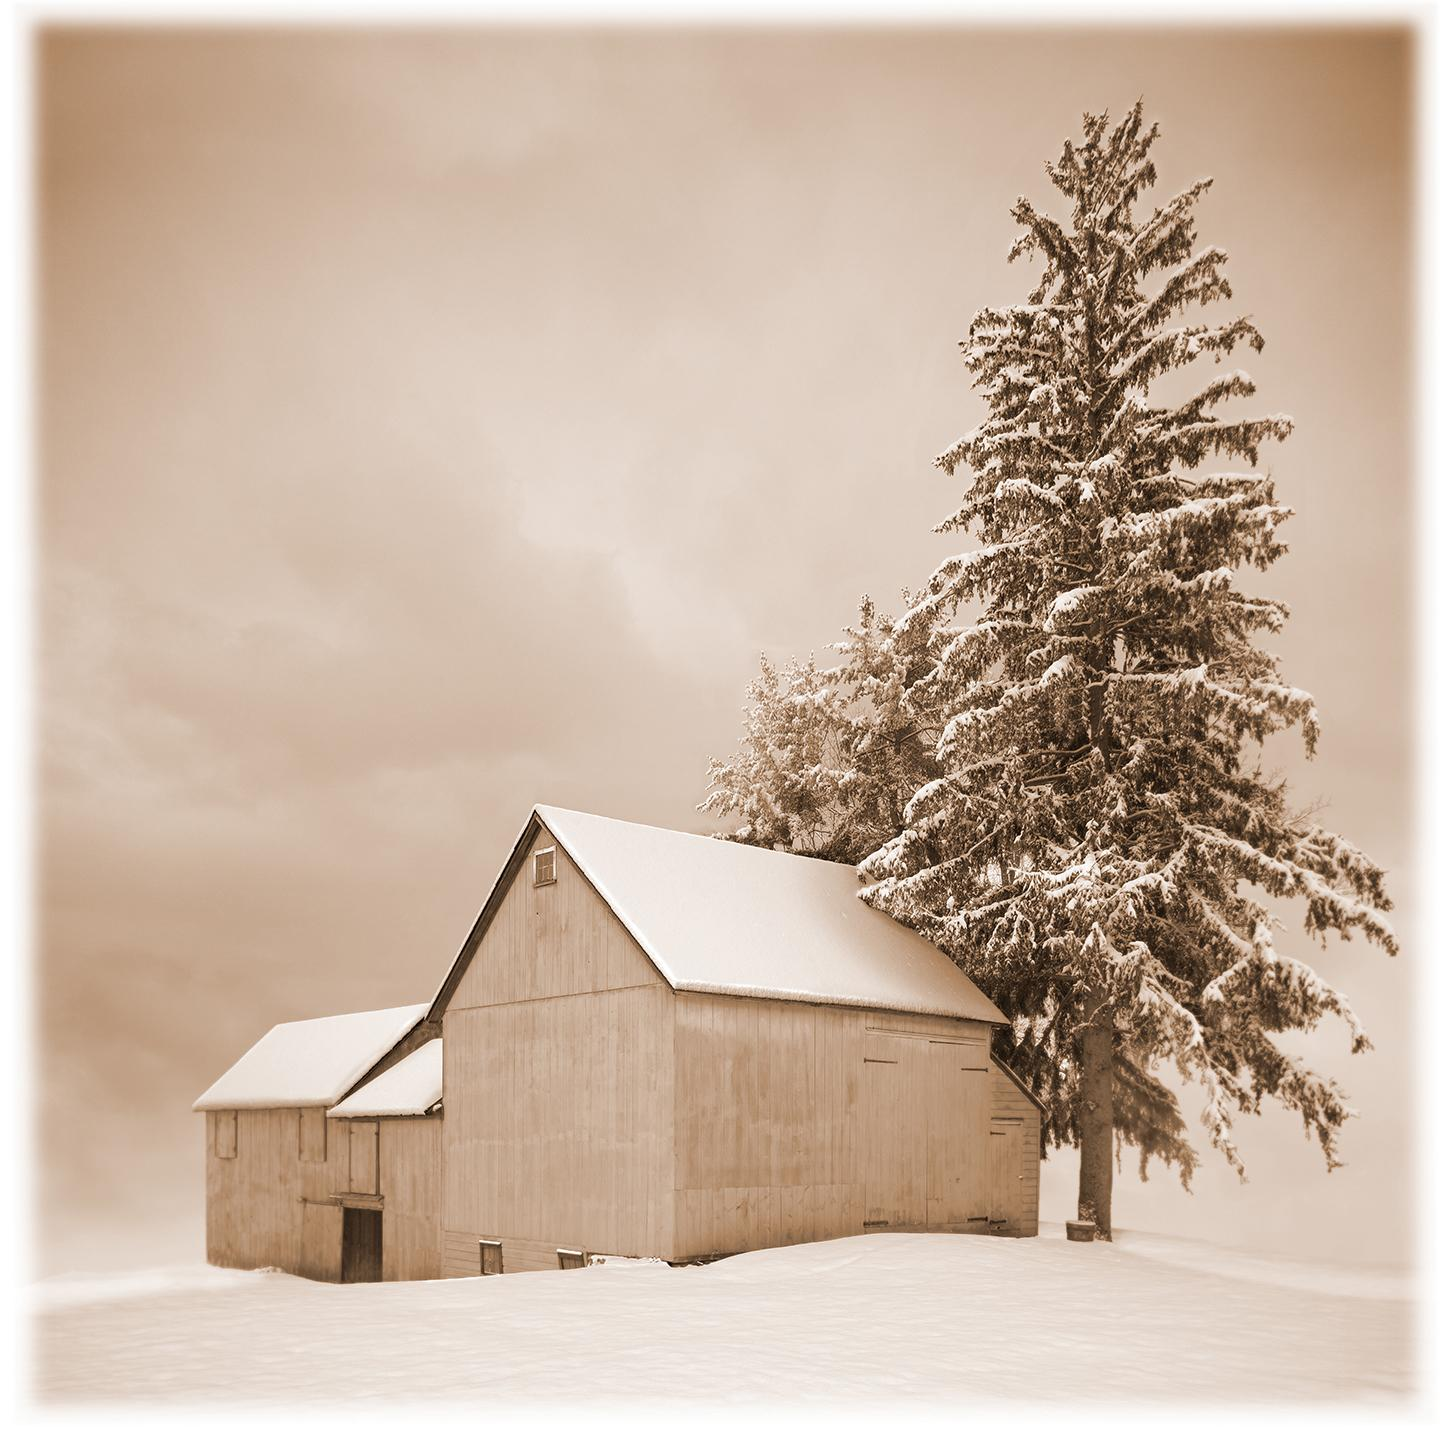 Barn, New Concord (A tranquil winter scene of Barn and Evergreen in Sepia)